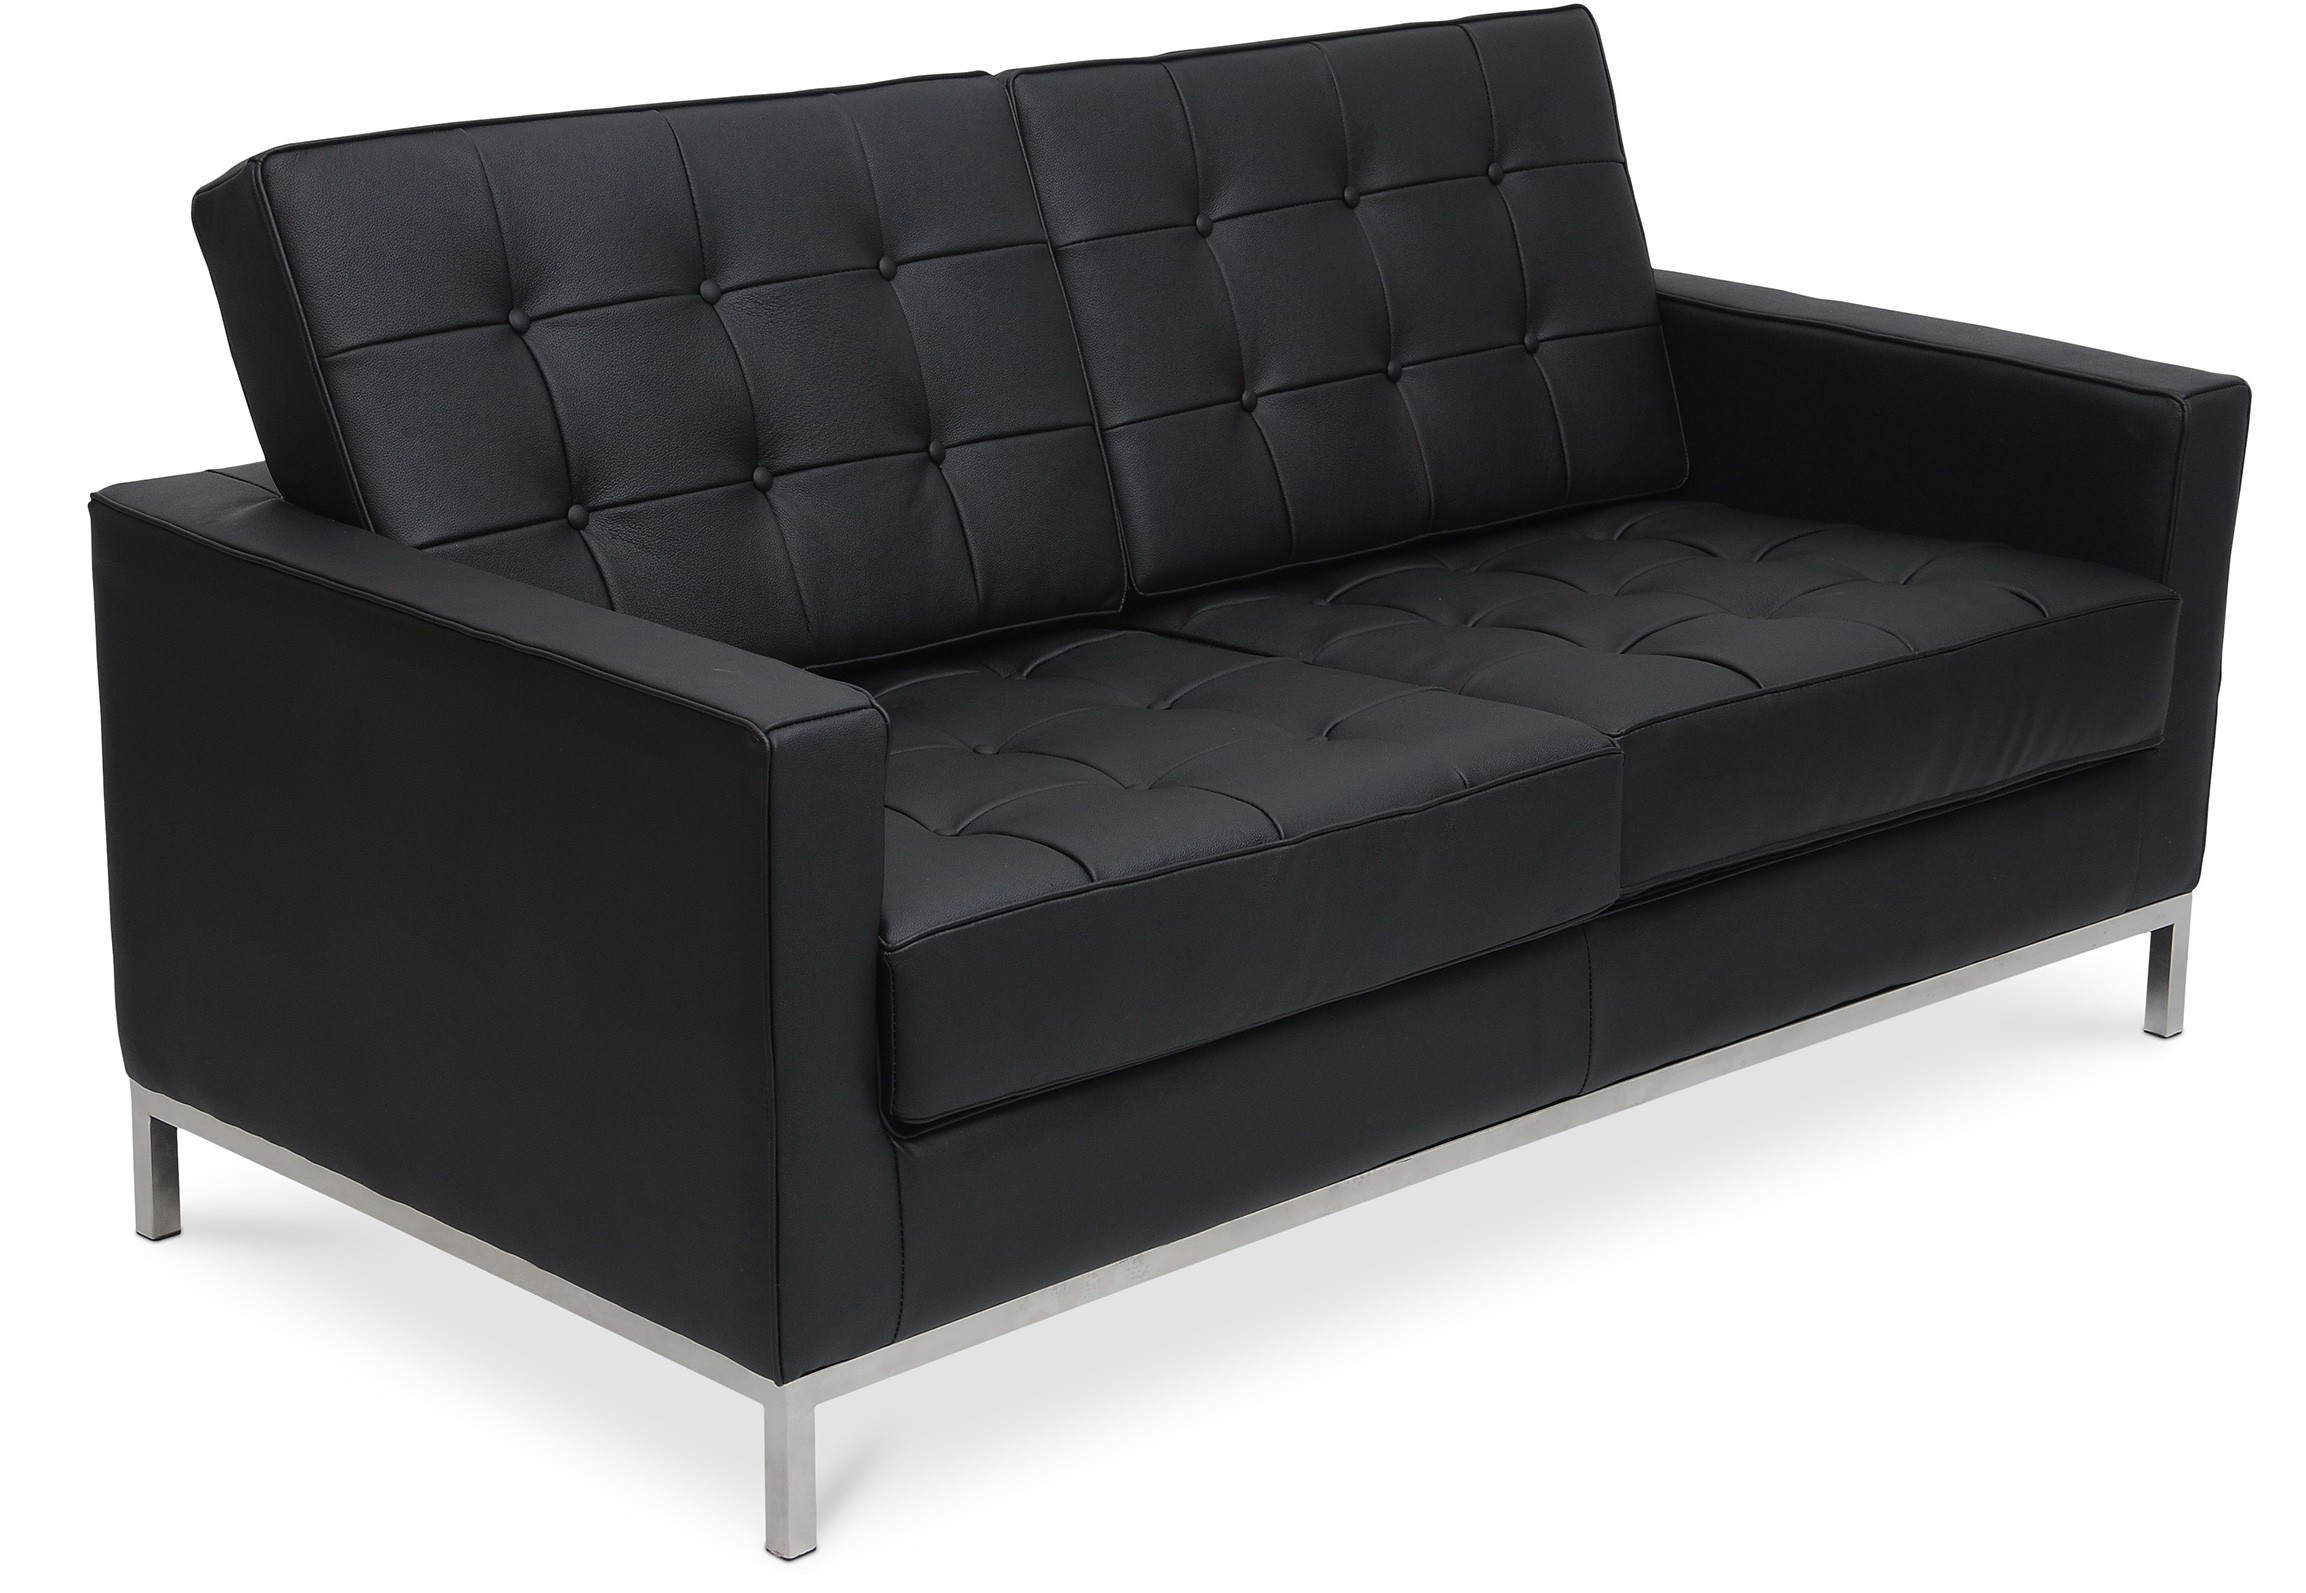 canap 2 places capitonn cuir noir inspir florence knoll. Black Bedroom Furniture Sets. Home Design Ideas